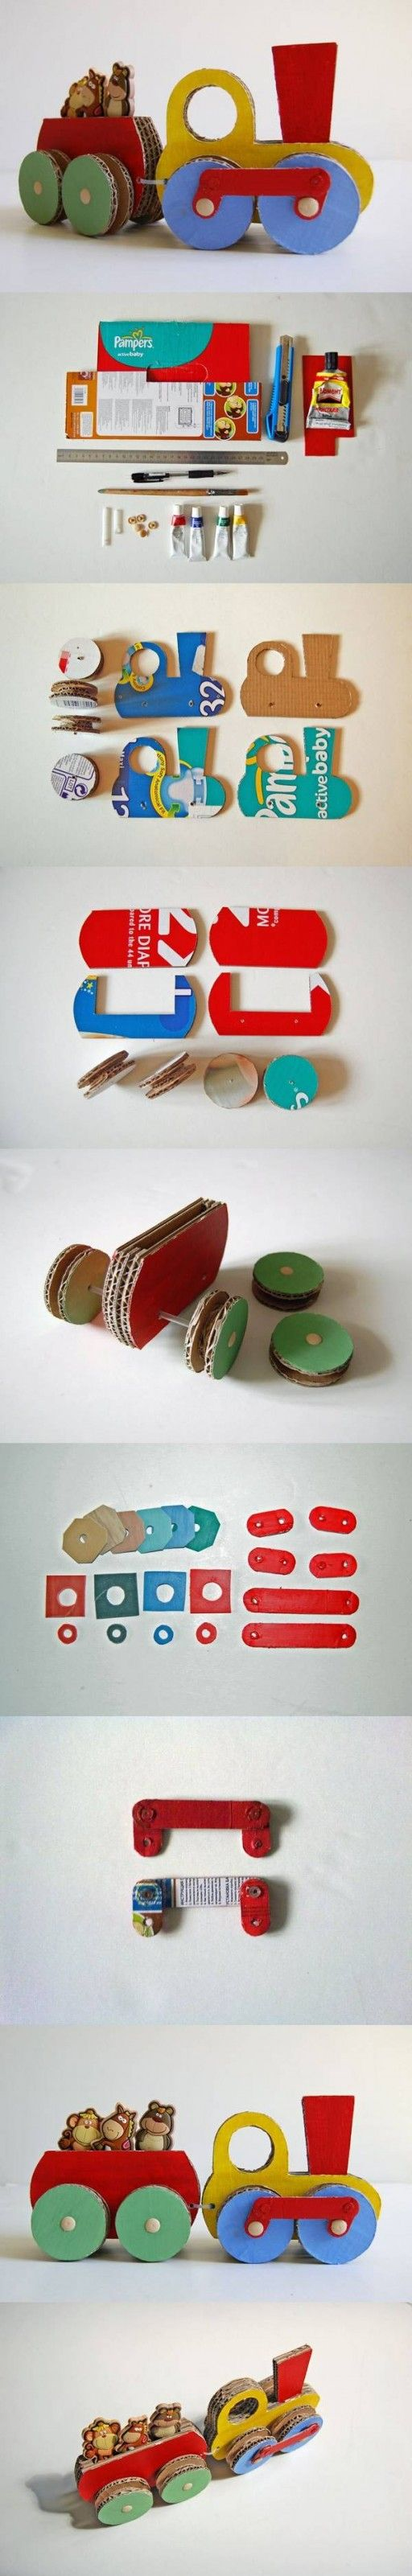 How to make Cardboard Train step by step DIY tutorial instructions 512x3203 How to make Cardboard Train step by step DIY tutorial instructio...